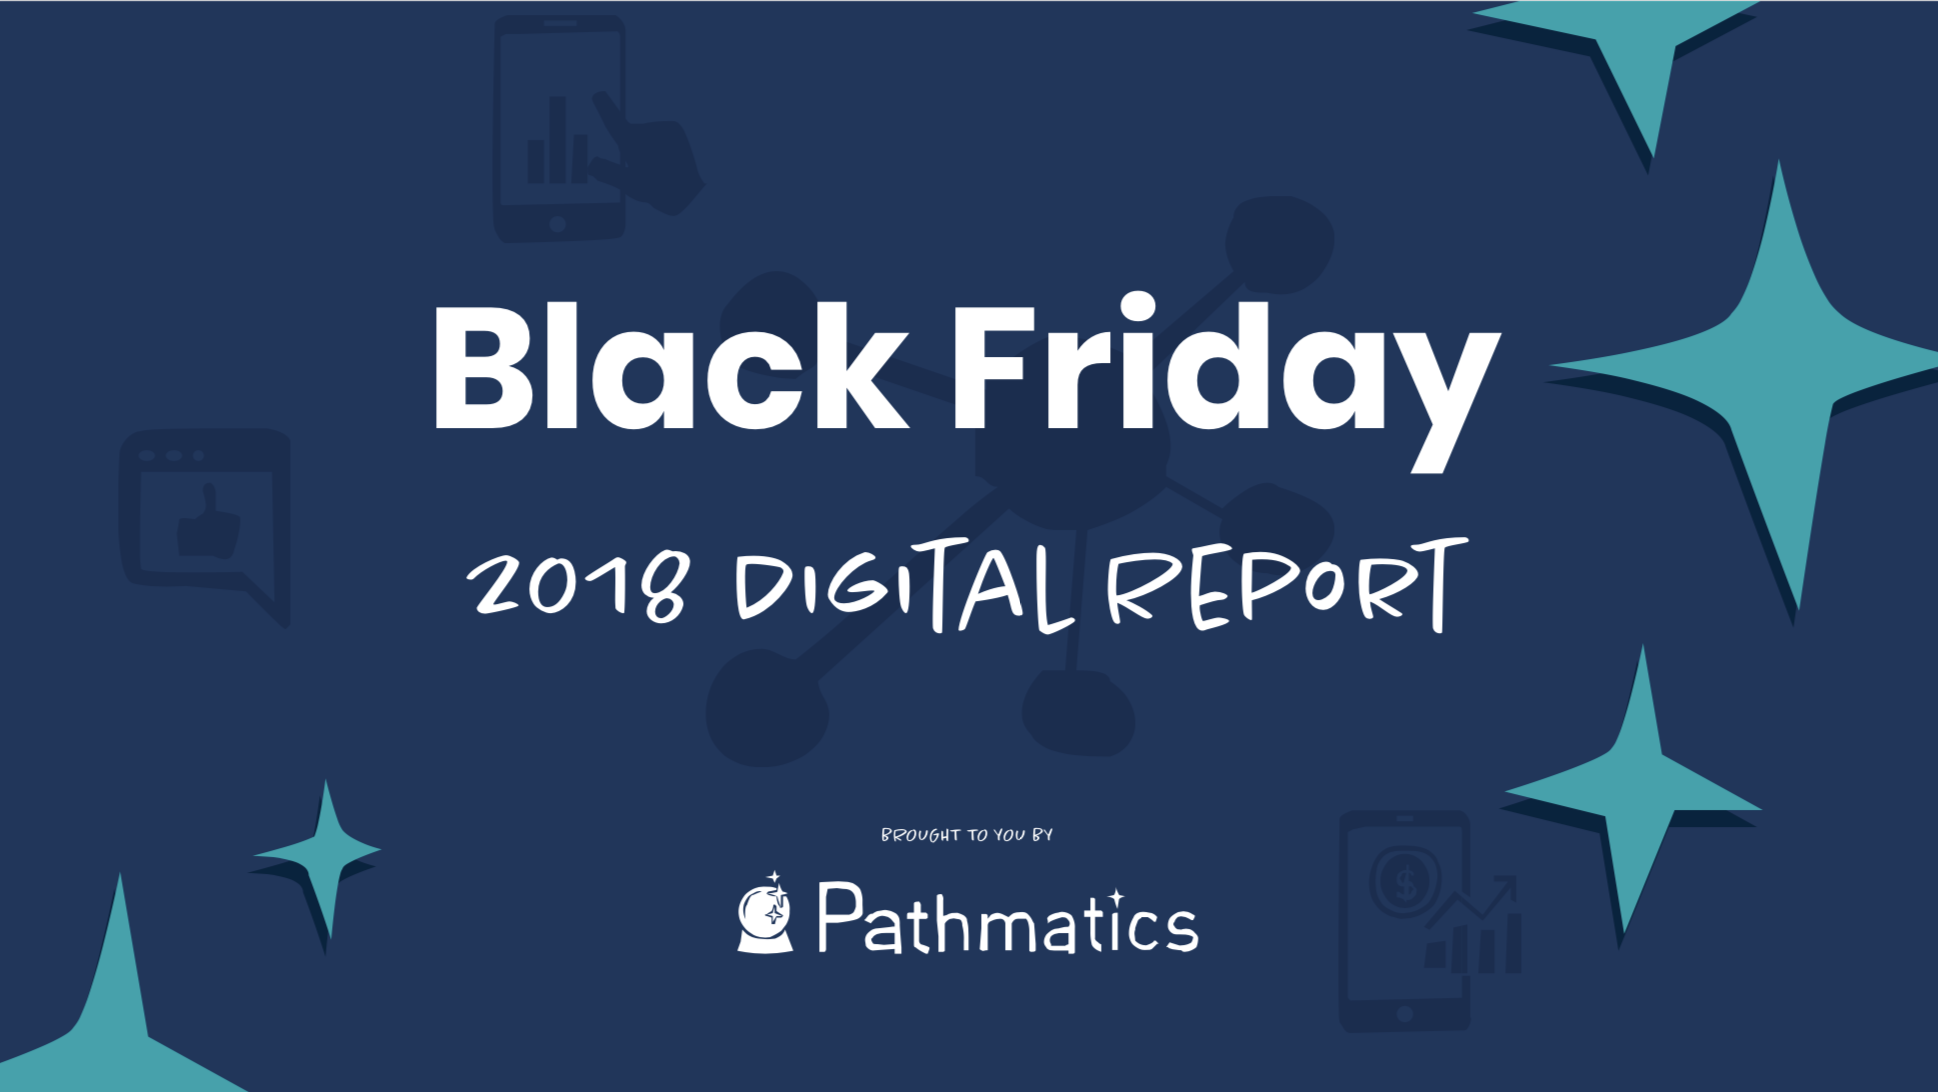 The Black Friday 2018 Digital Report is Here!